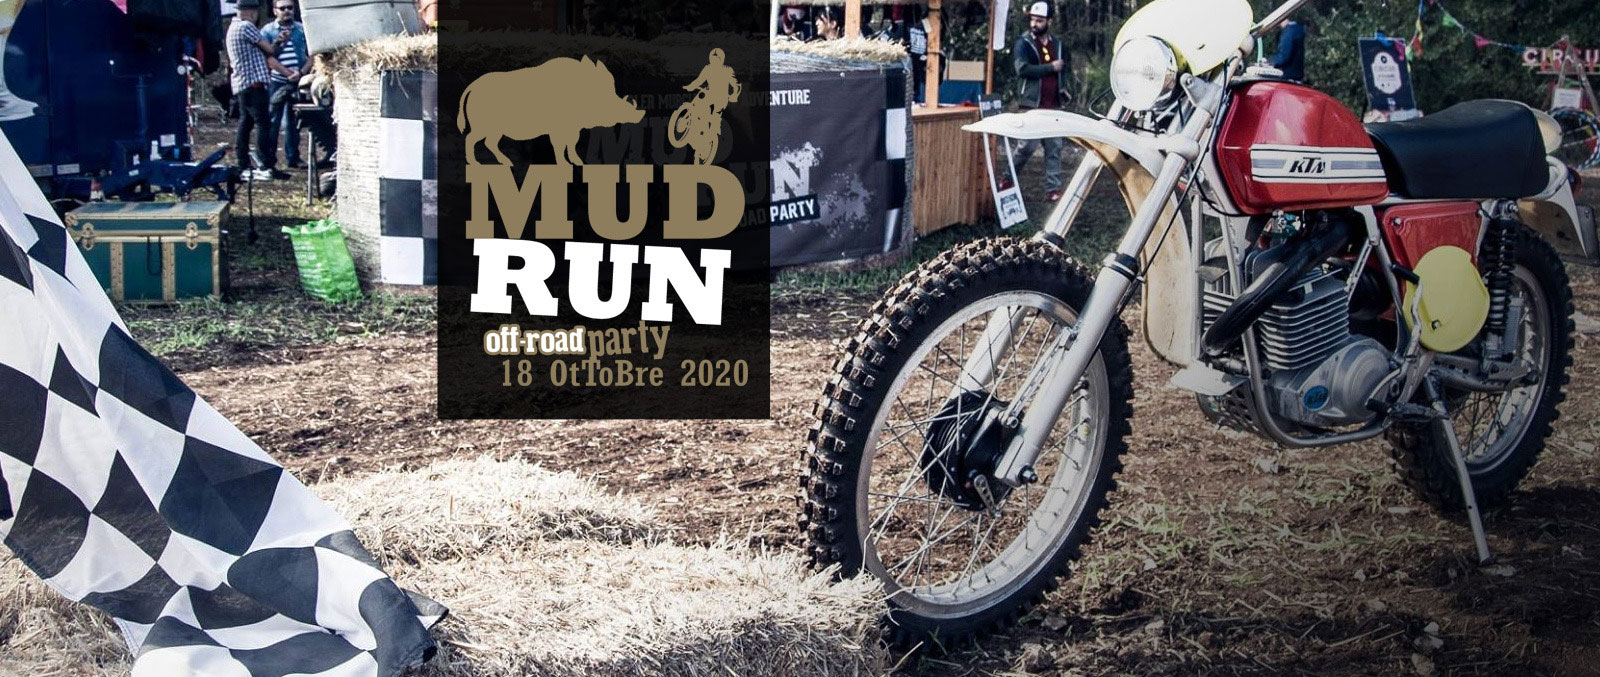 franky-rockers-mud-run-off-road-party-18-ottobre-2020